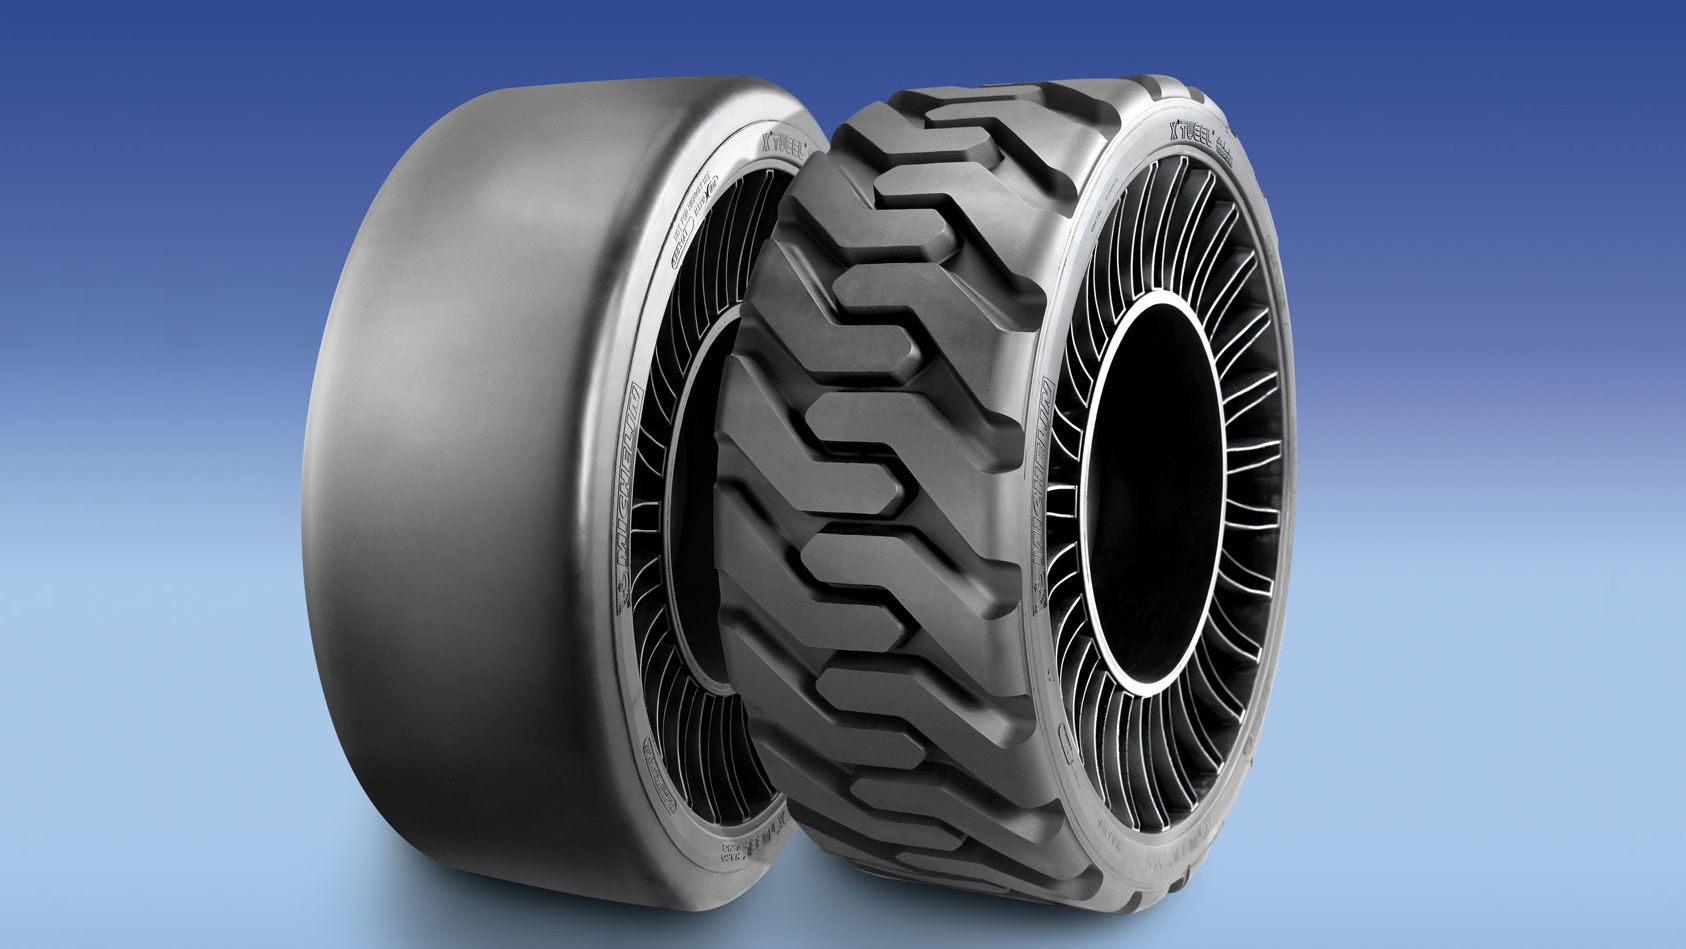 medium resolution of we ve been promised airless puncture proof tires for bloody ever by this point but pump haters your time is arriving starting next week